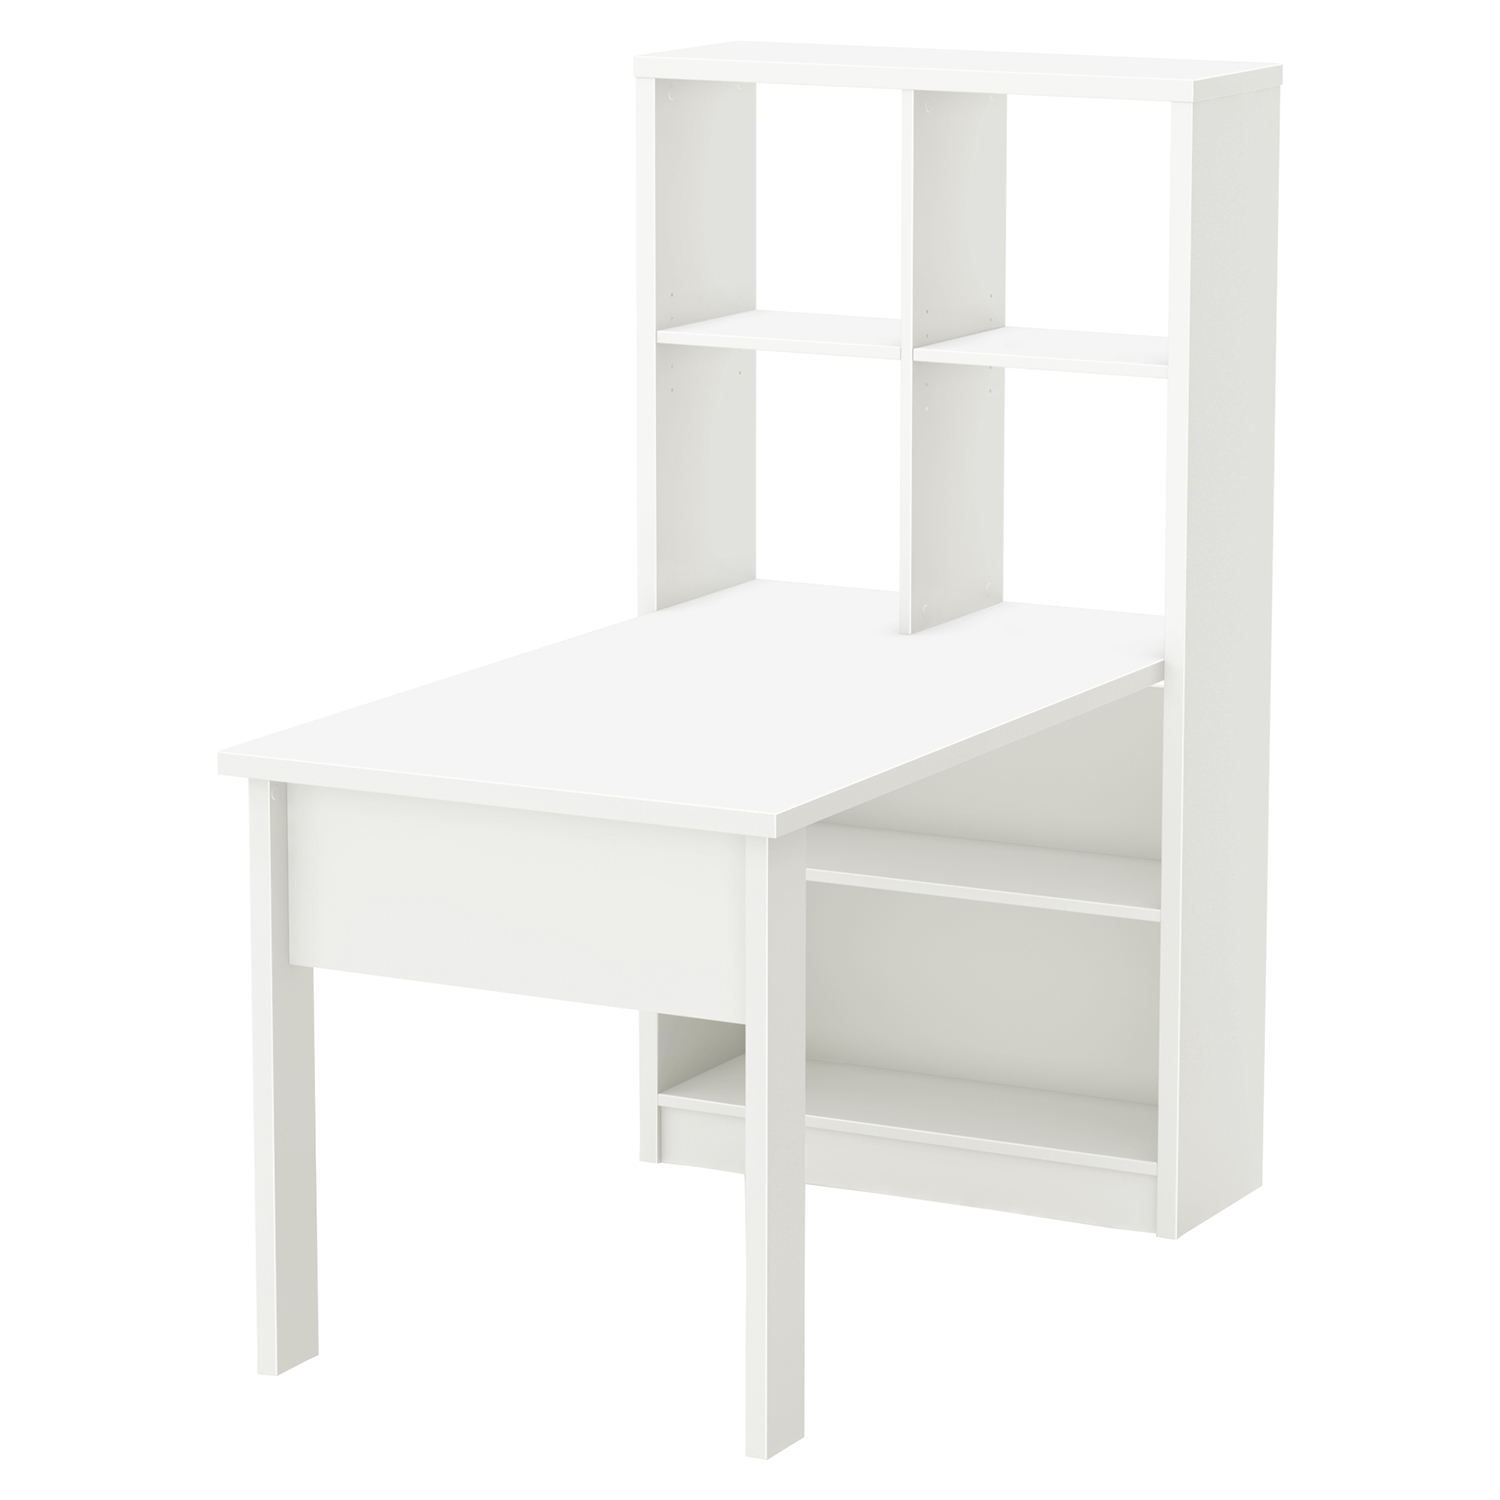 Annexe Craft Table and Storage Unit Combo - Pure White